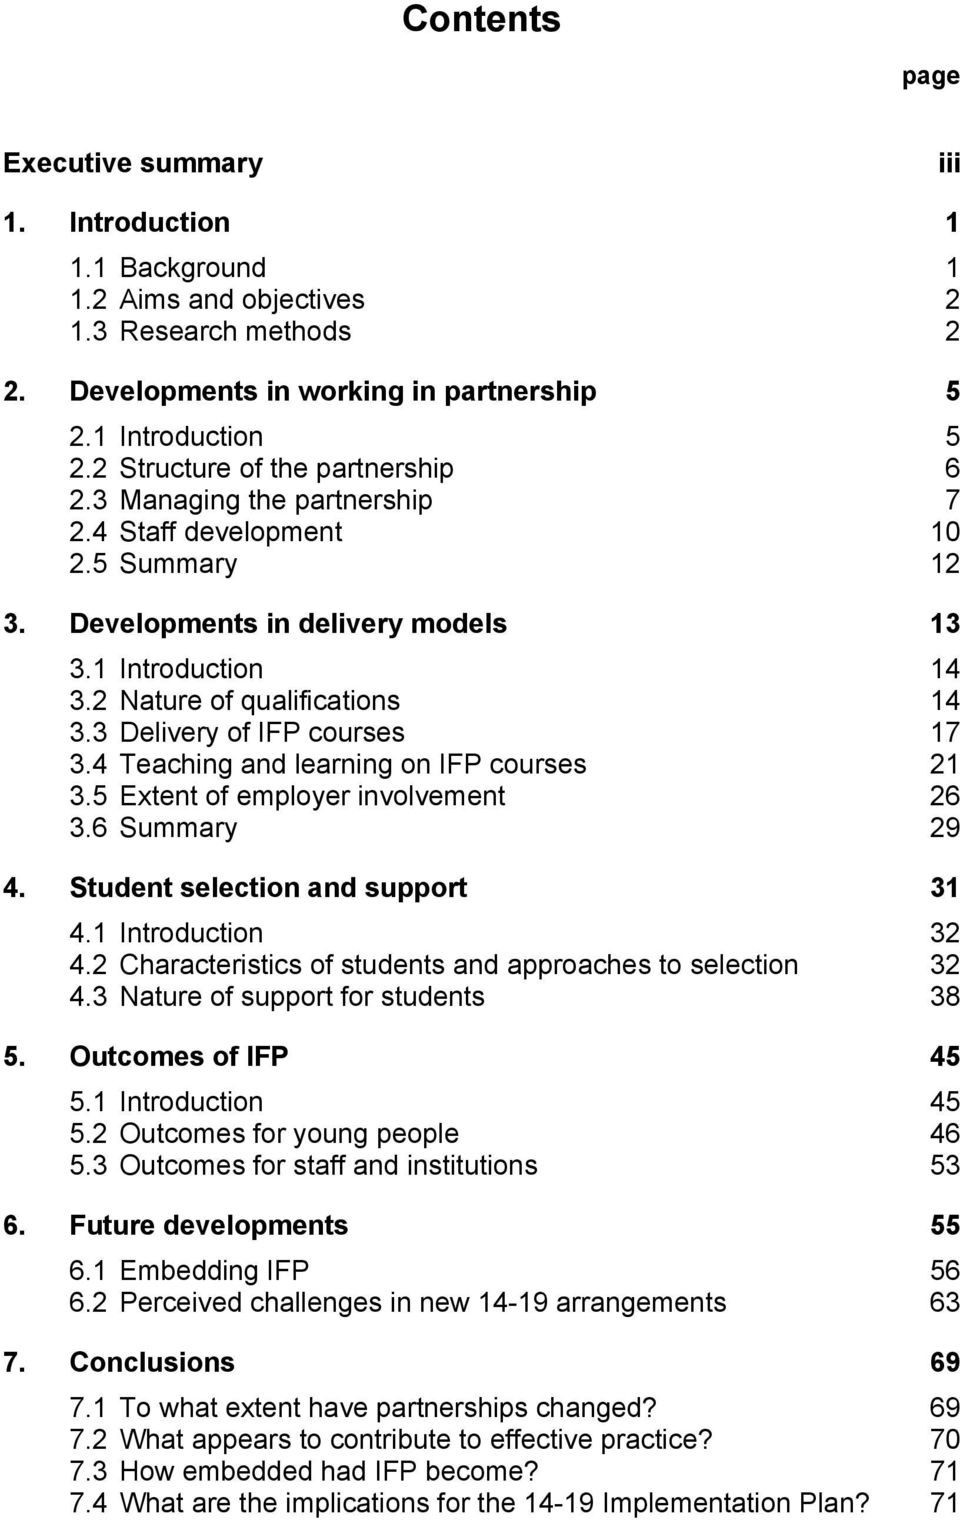 3 Delivery of IFP courses 17 3.4 Teaching and learning on IFP courses 21 3.5 Extent of employer involvement 26 3.6 Summary 29 4. Student selection and support 31 4.1 Introduction 32 4.